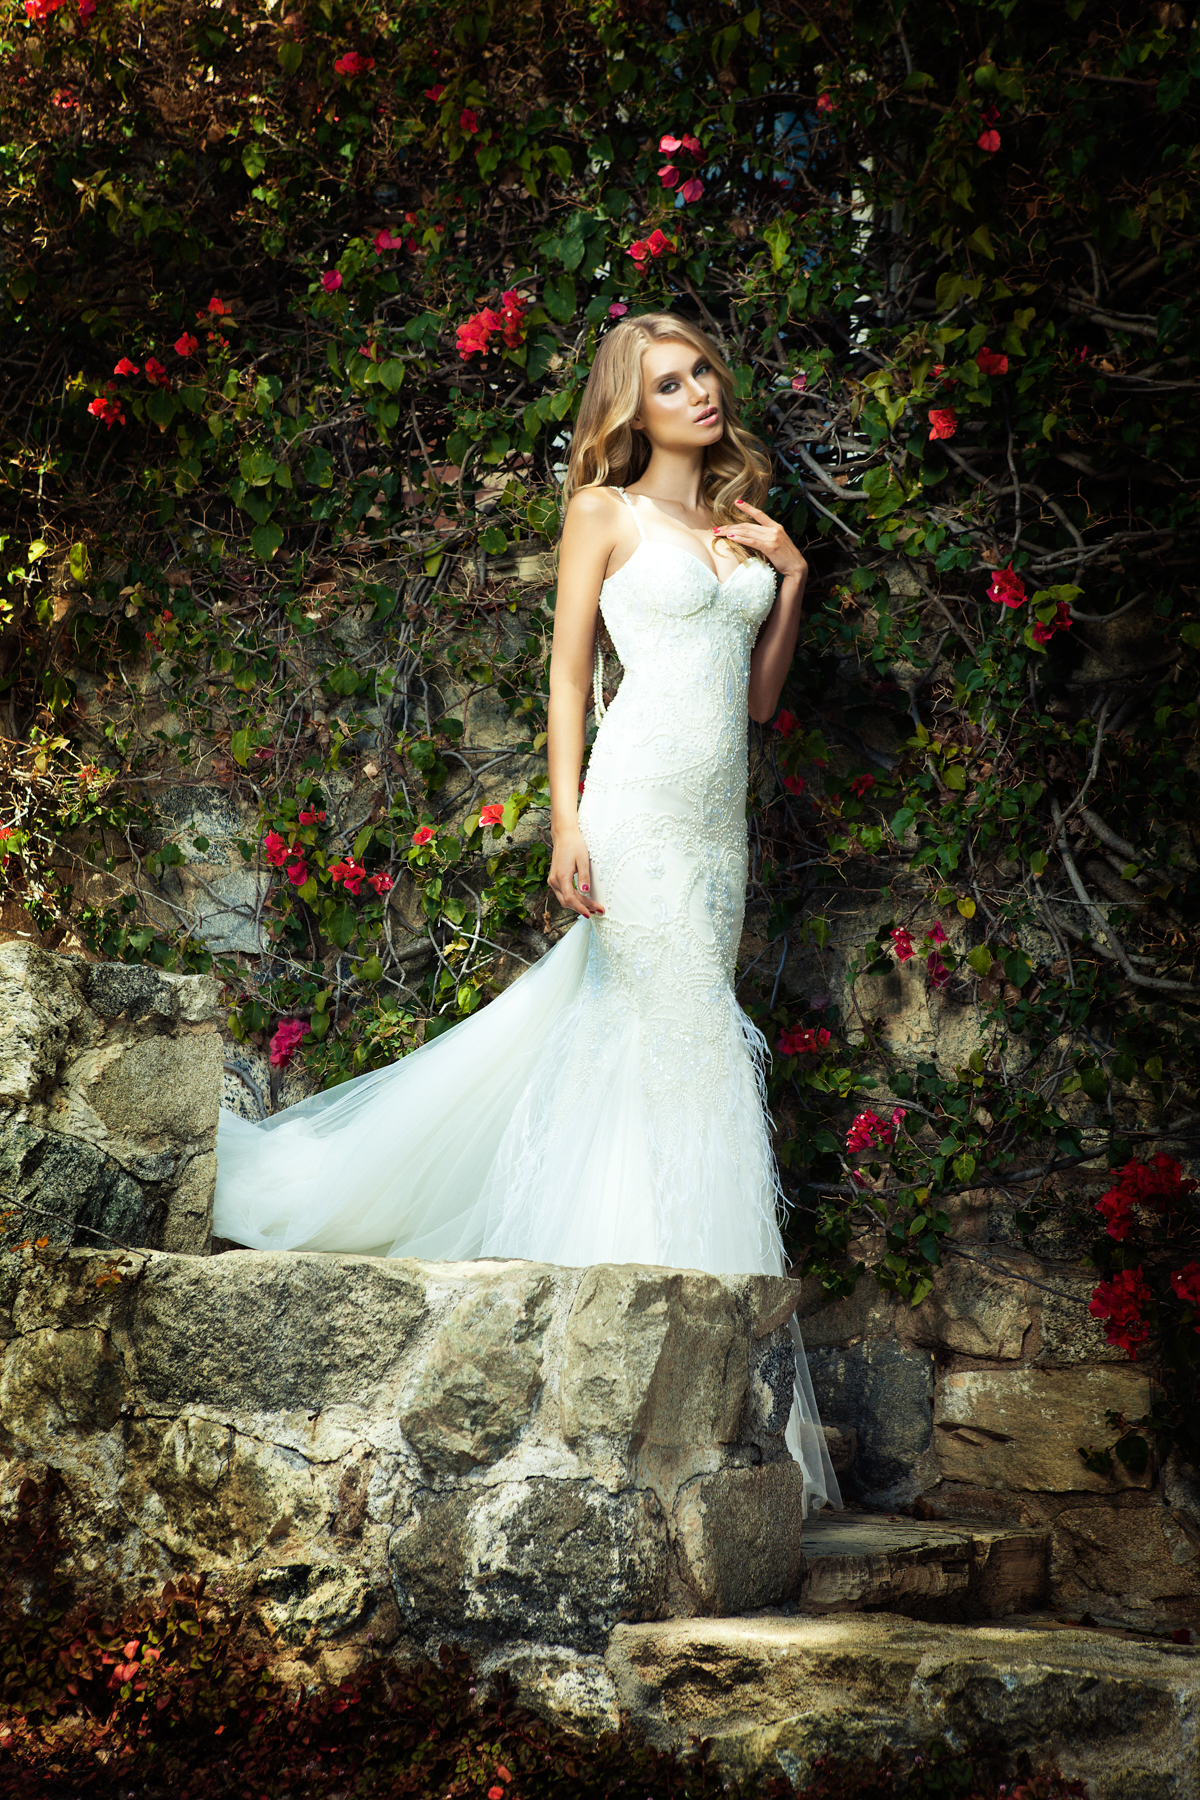 Tanya Reutt | WeddingStyleMagazine.com